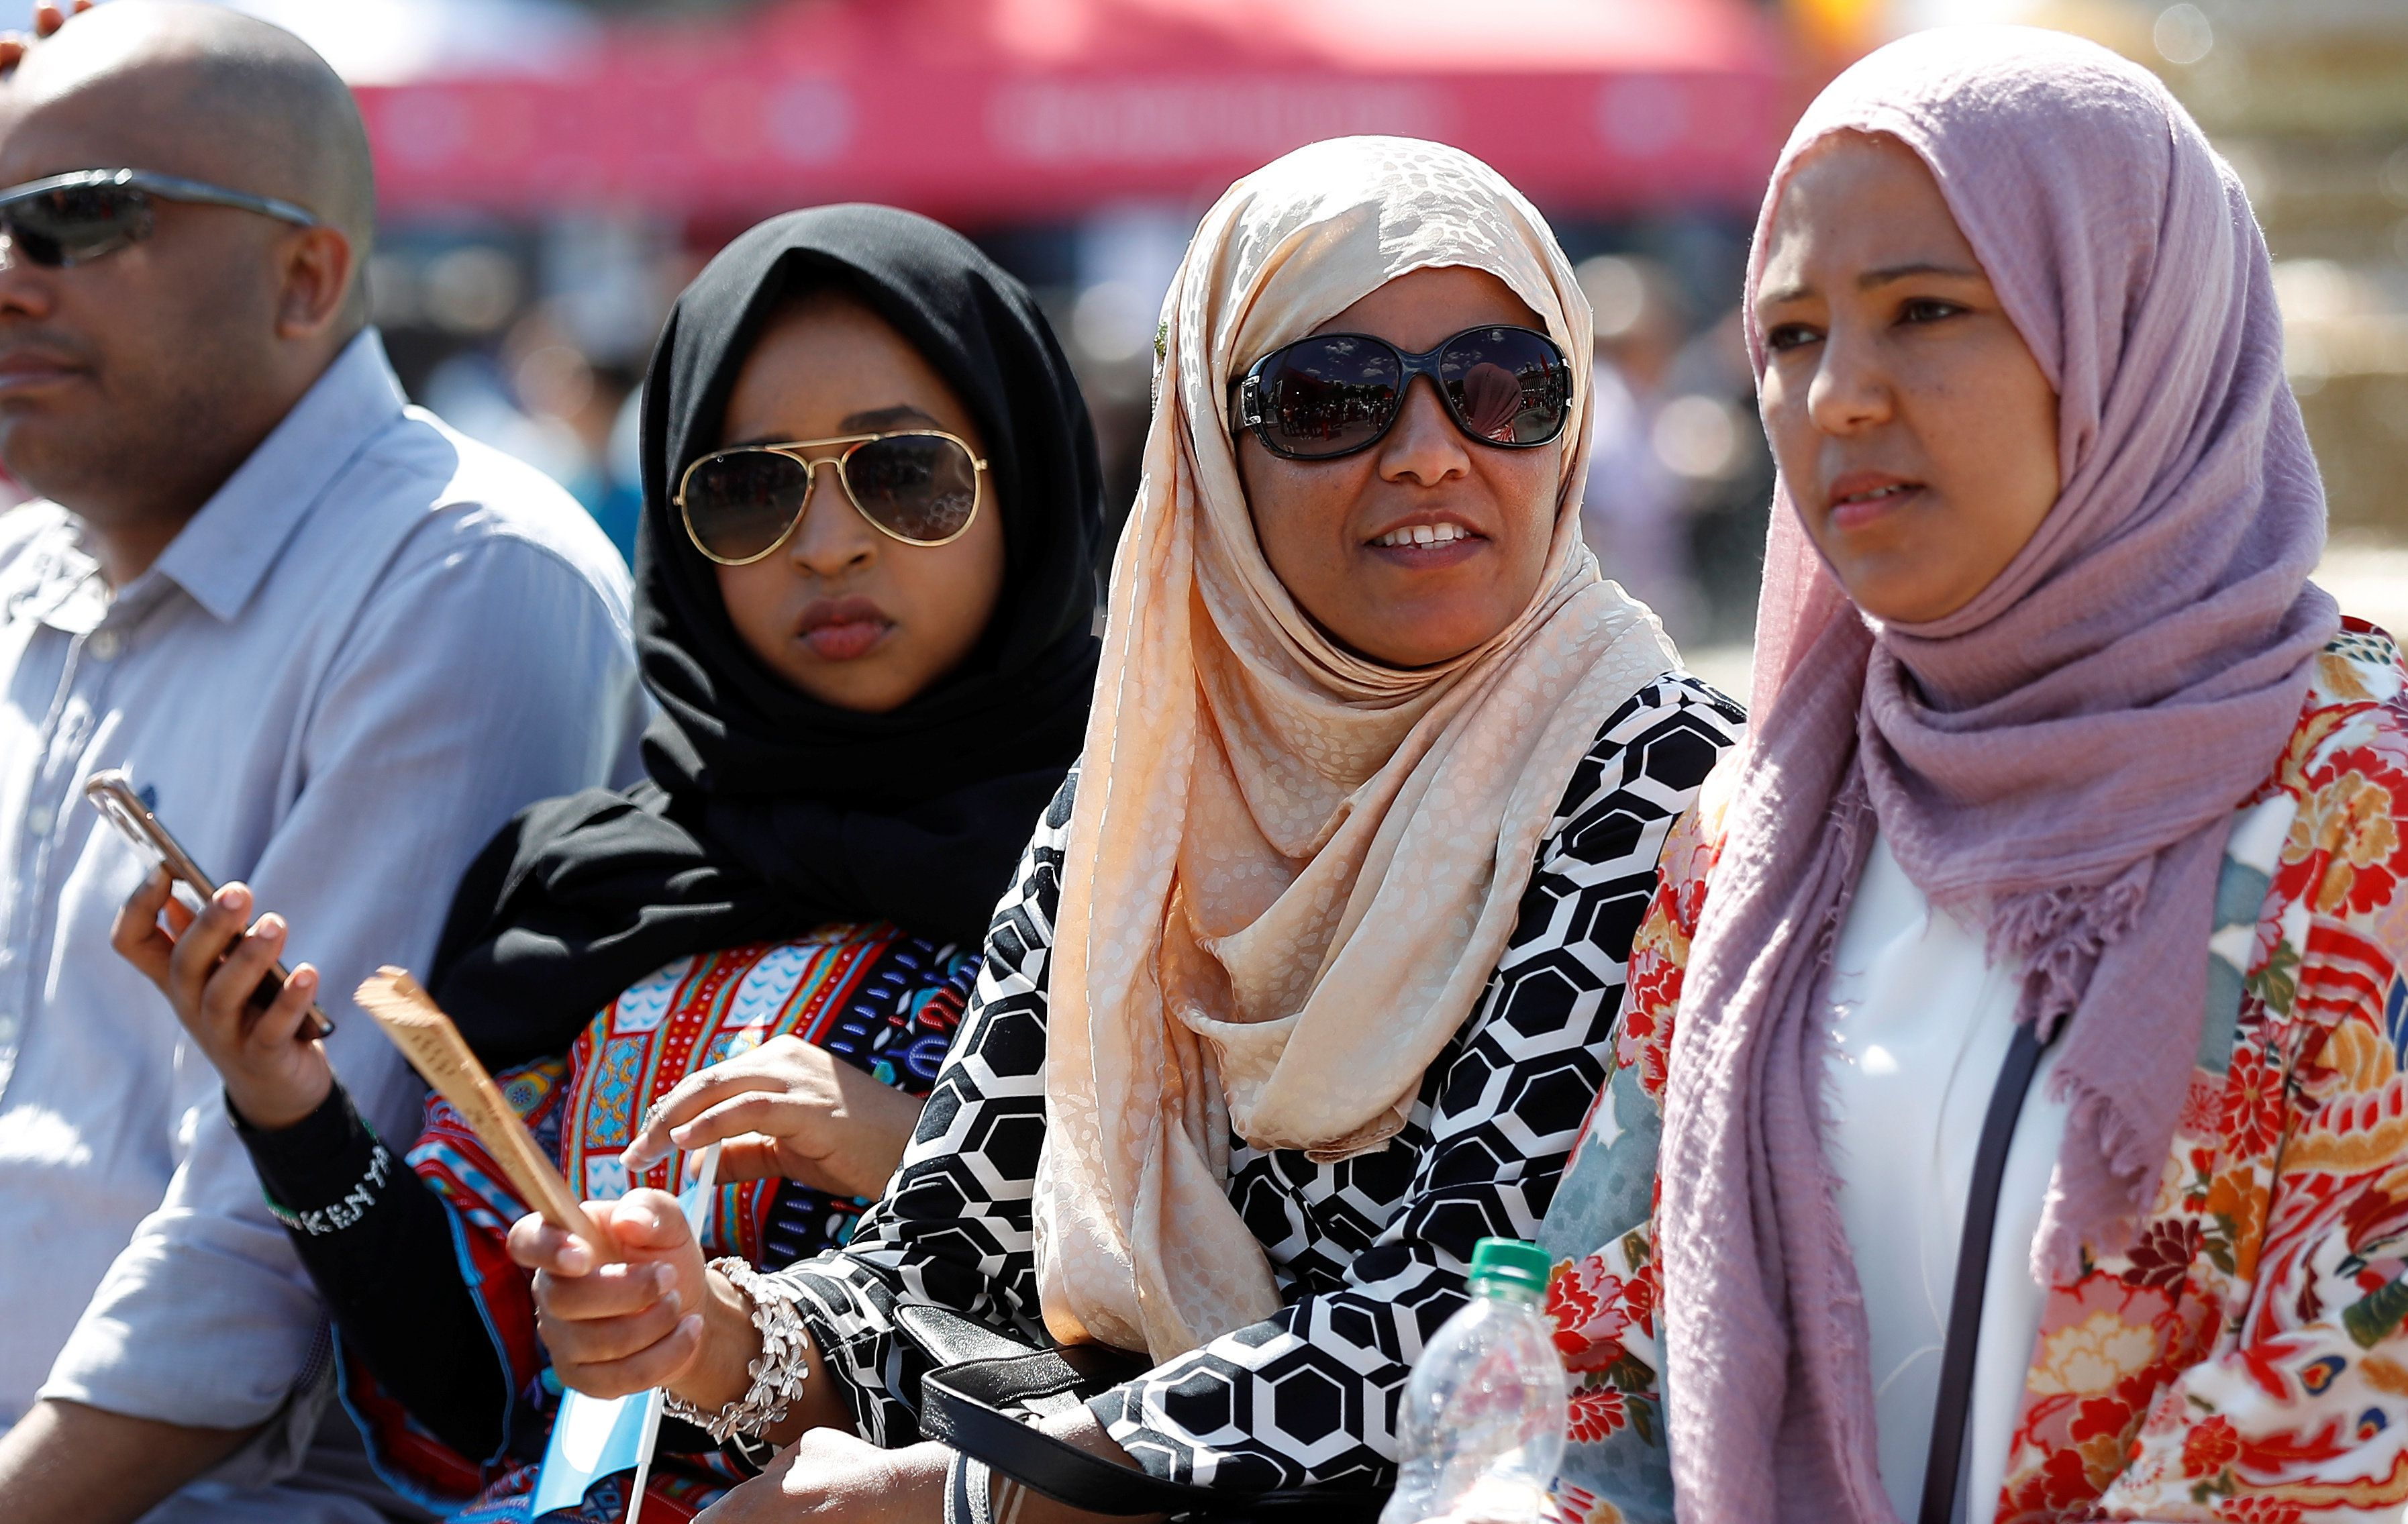 Muslim women listen to Iive music during the Eid Festival in Trafalgar Square, London, Britain July 2, 2017.  REUTERS/Peter Nicholls